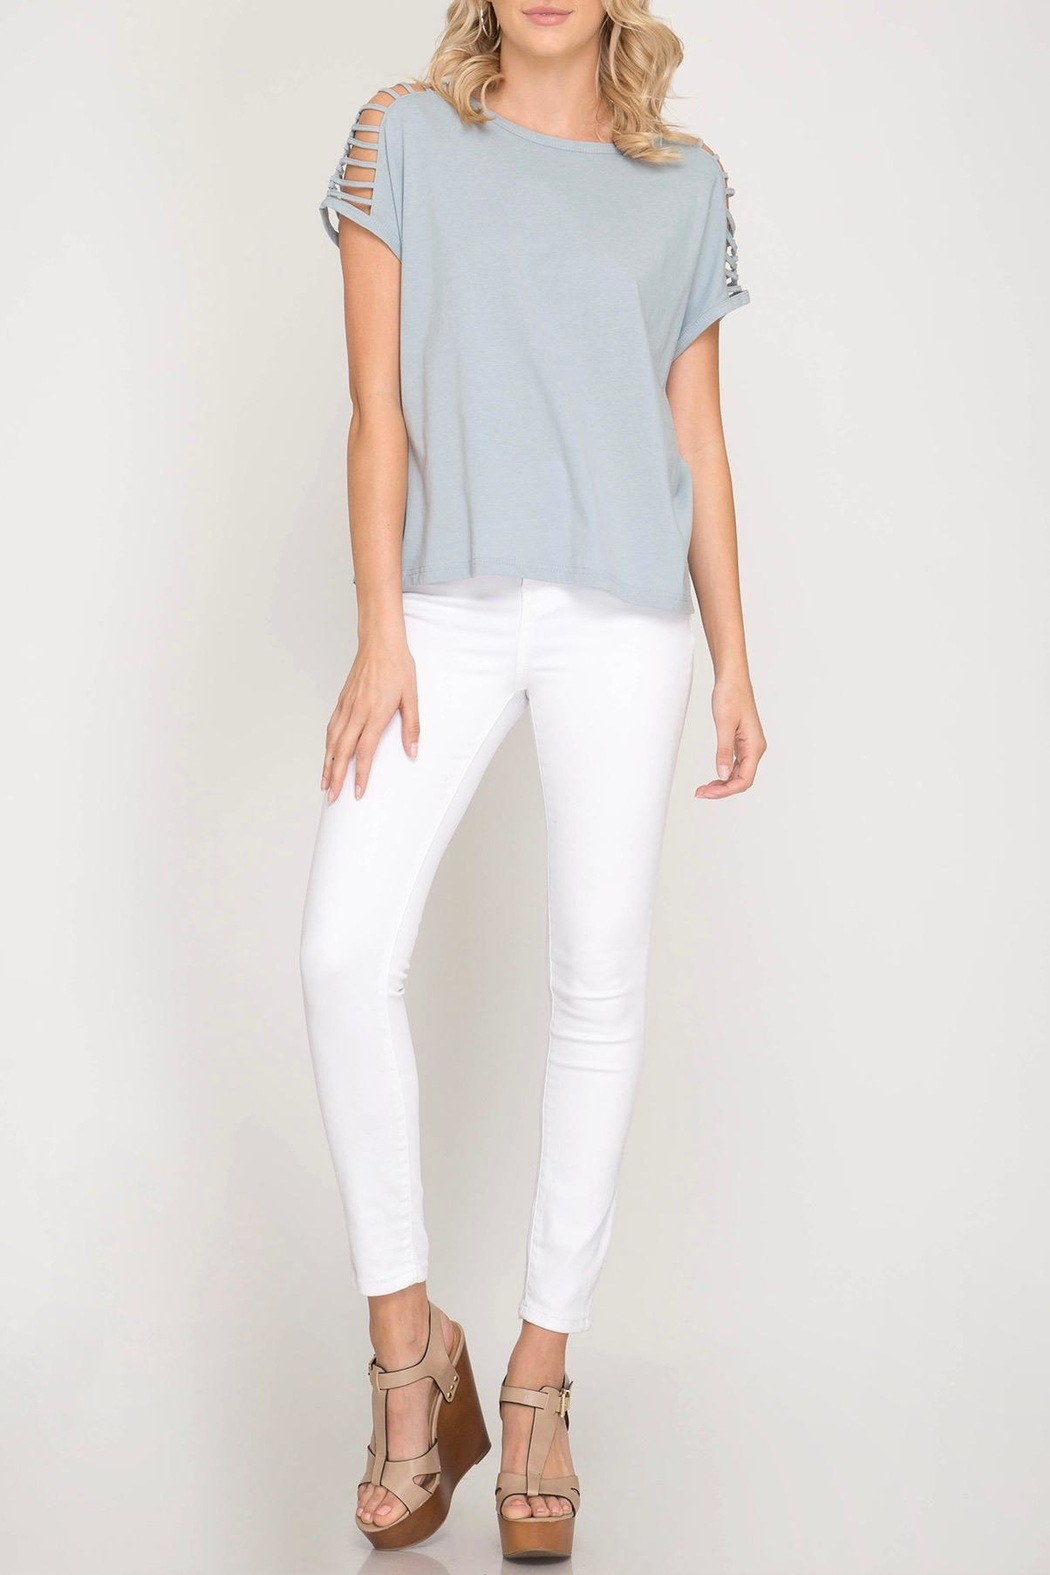 She + Sky Shoulder Cutout Top - Back Cropped Image